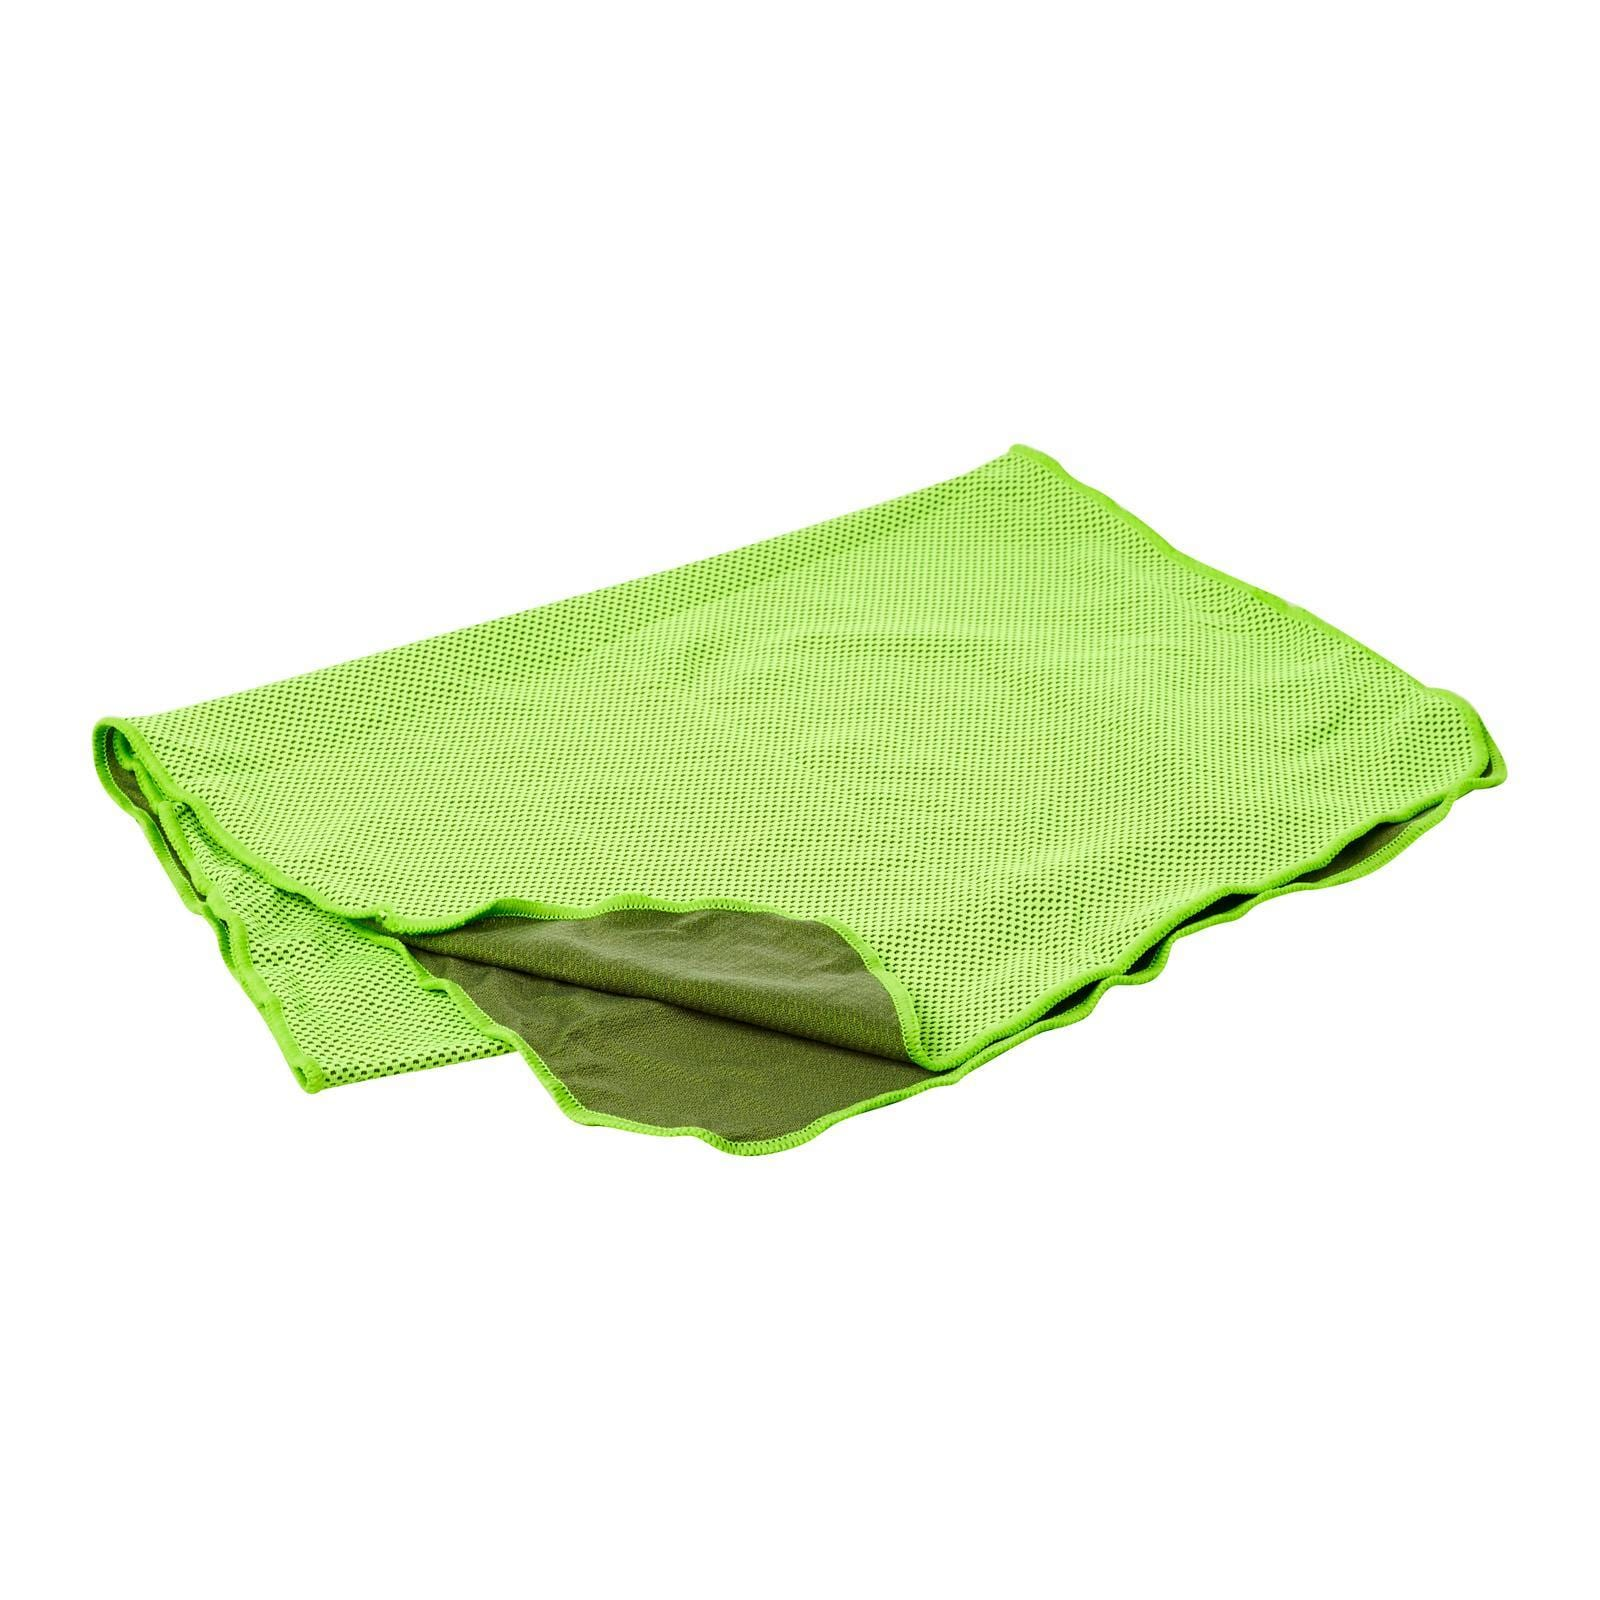 Coolite Sports Towel In Neon Lime - FUNFIT